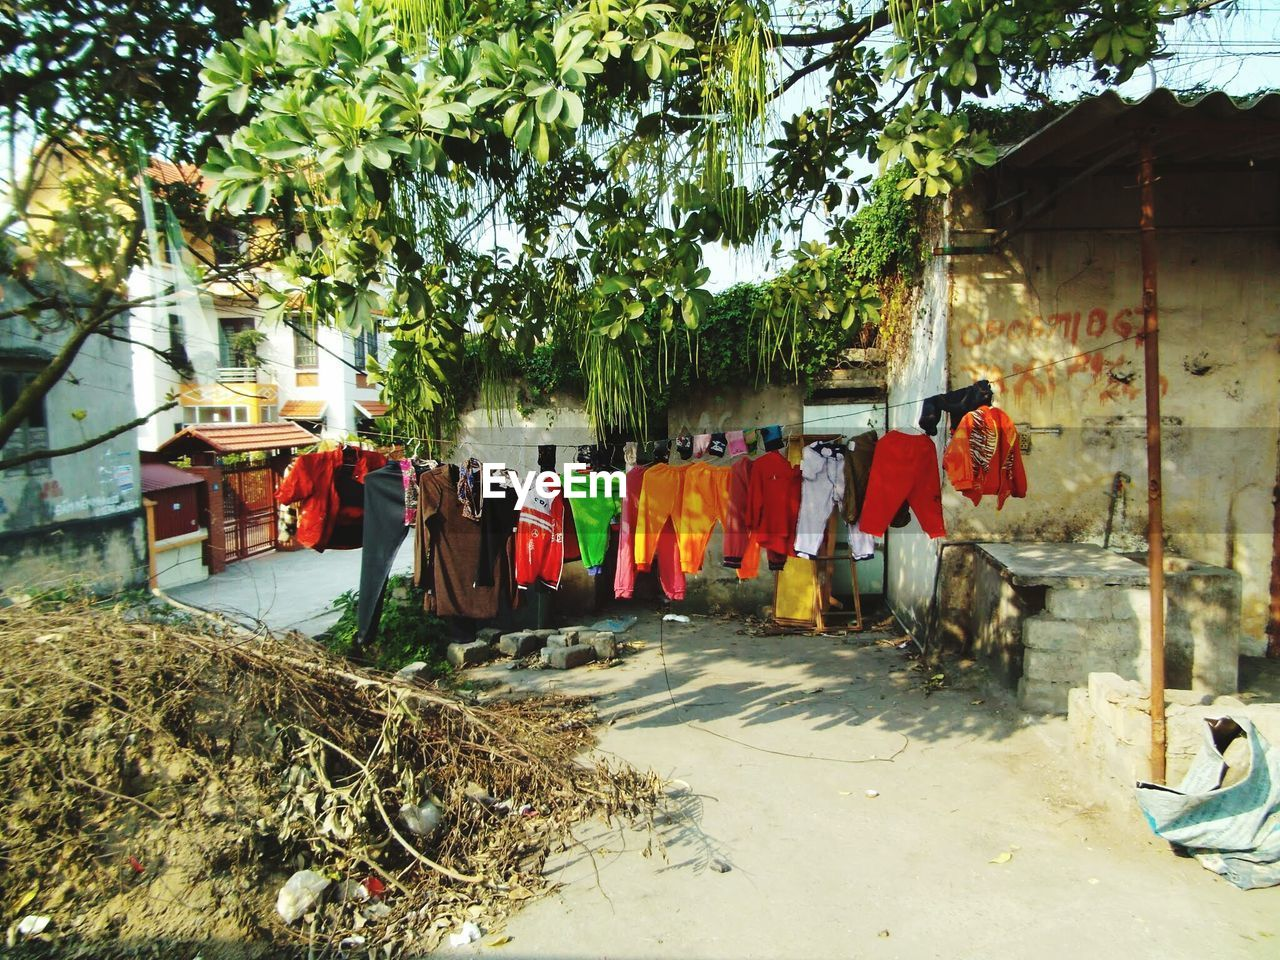 tree, plant, nature, group of people, day, clothing, architecture, built structure, hanging, building exterior, outdoors, sunlight, laundry, drying, building, group, textile, traditional clothing, city, uniform